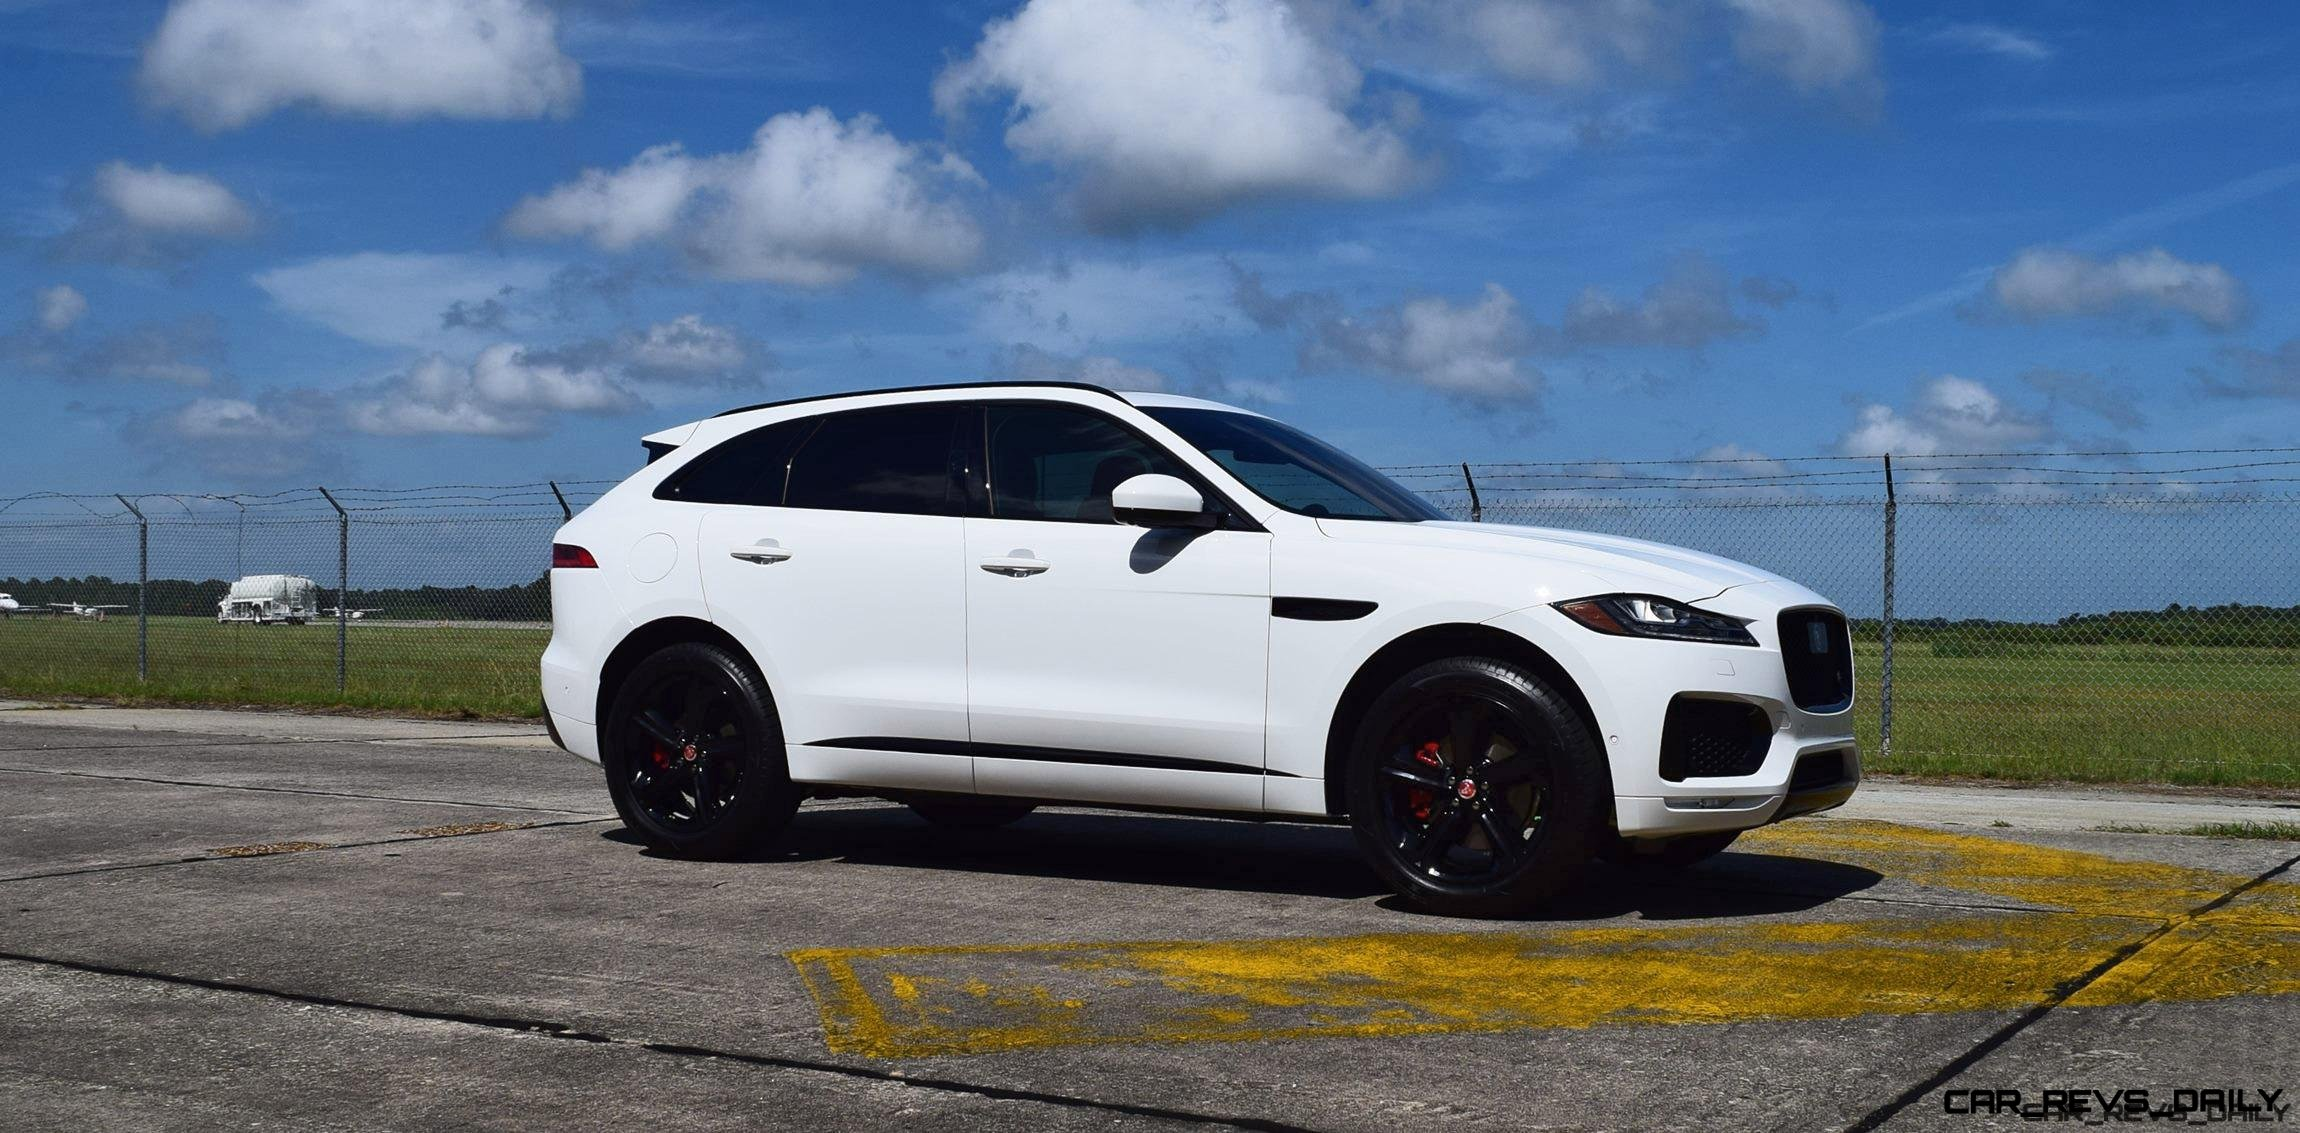 2017 Jaguar F-Pace S - White Exterior 109